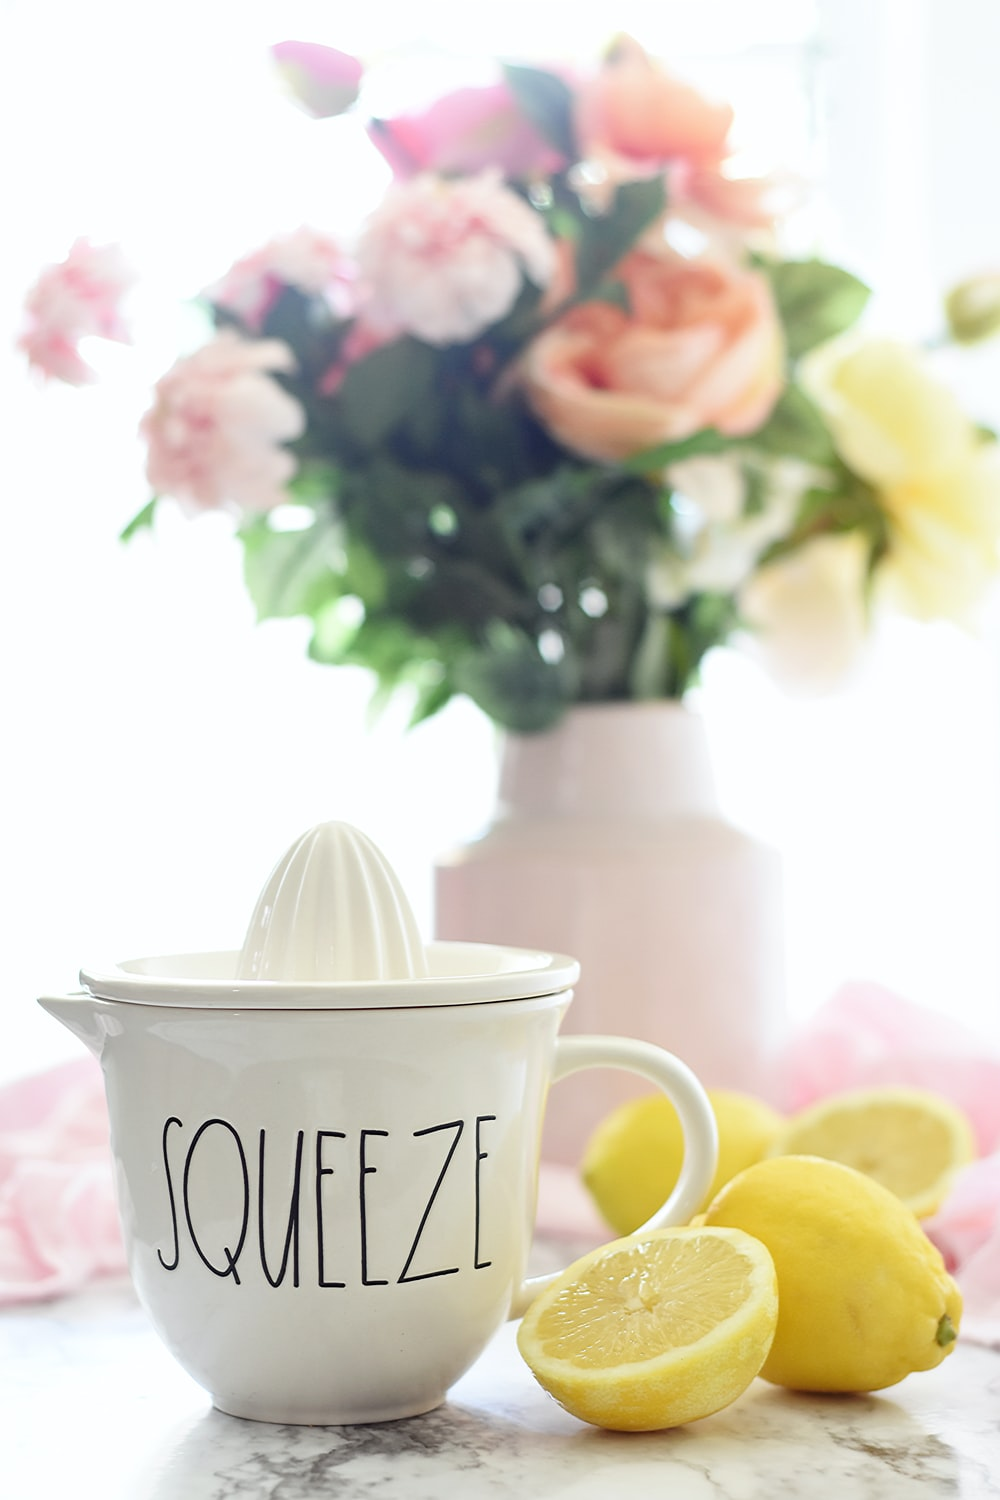 lemon beside white mug